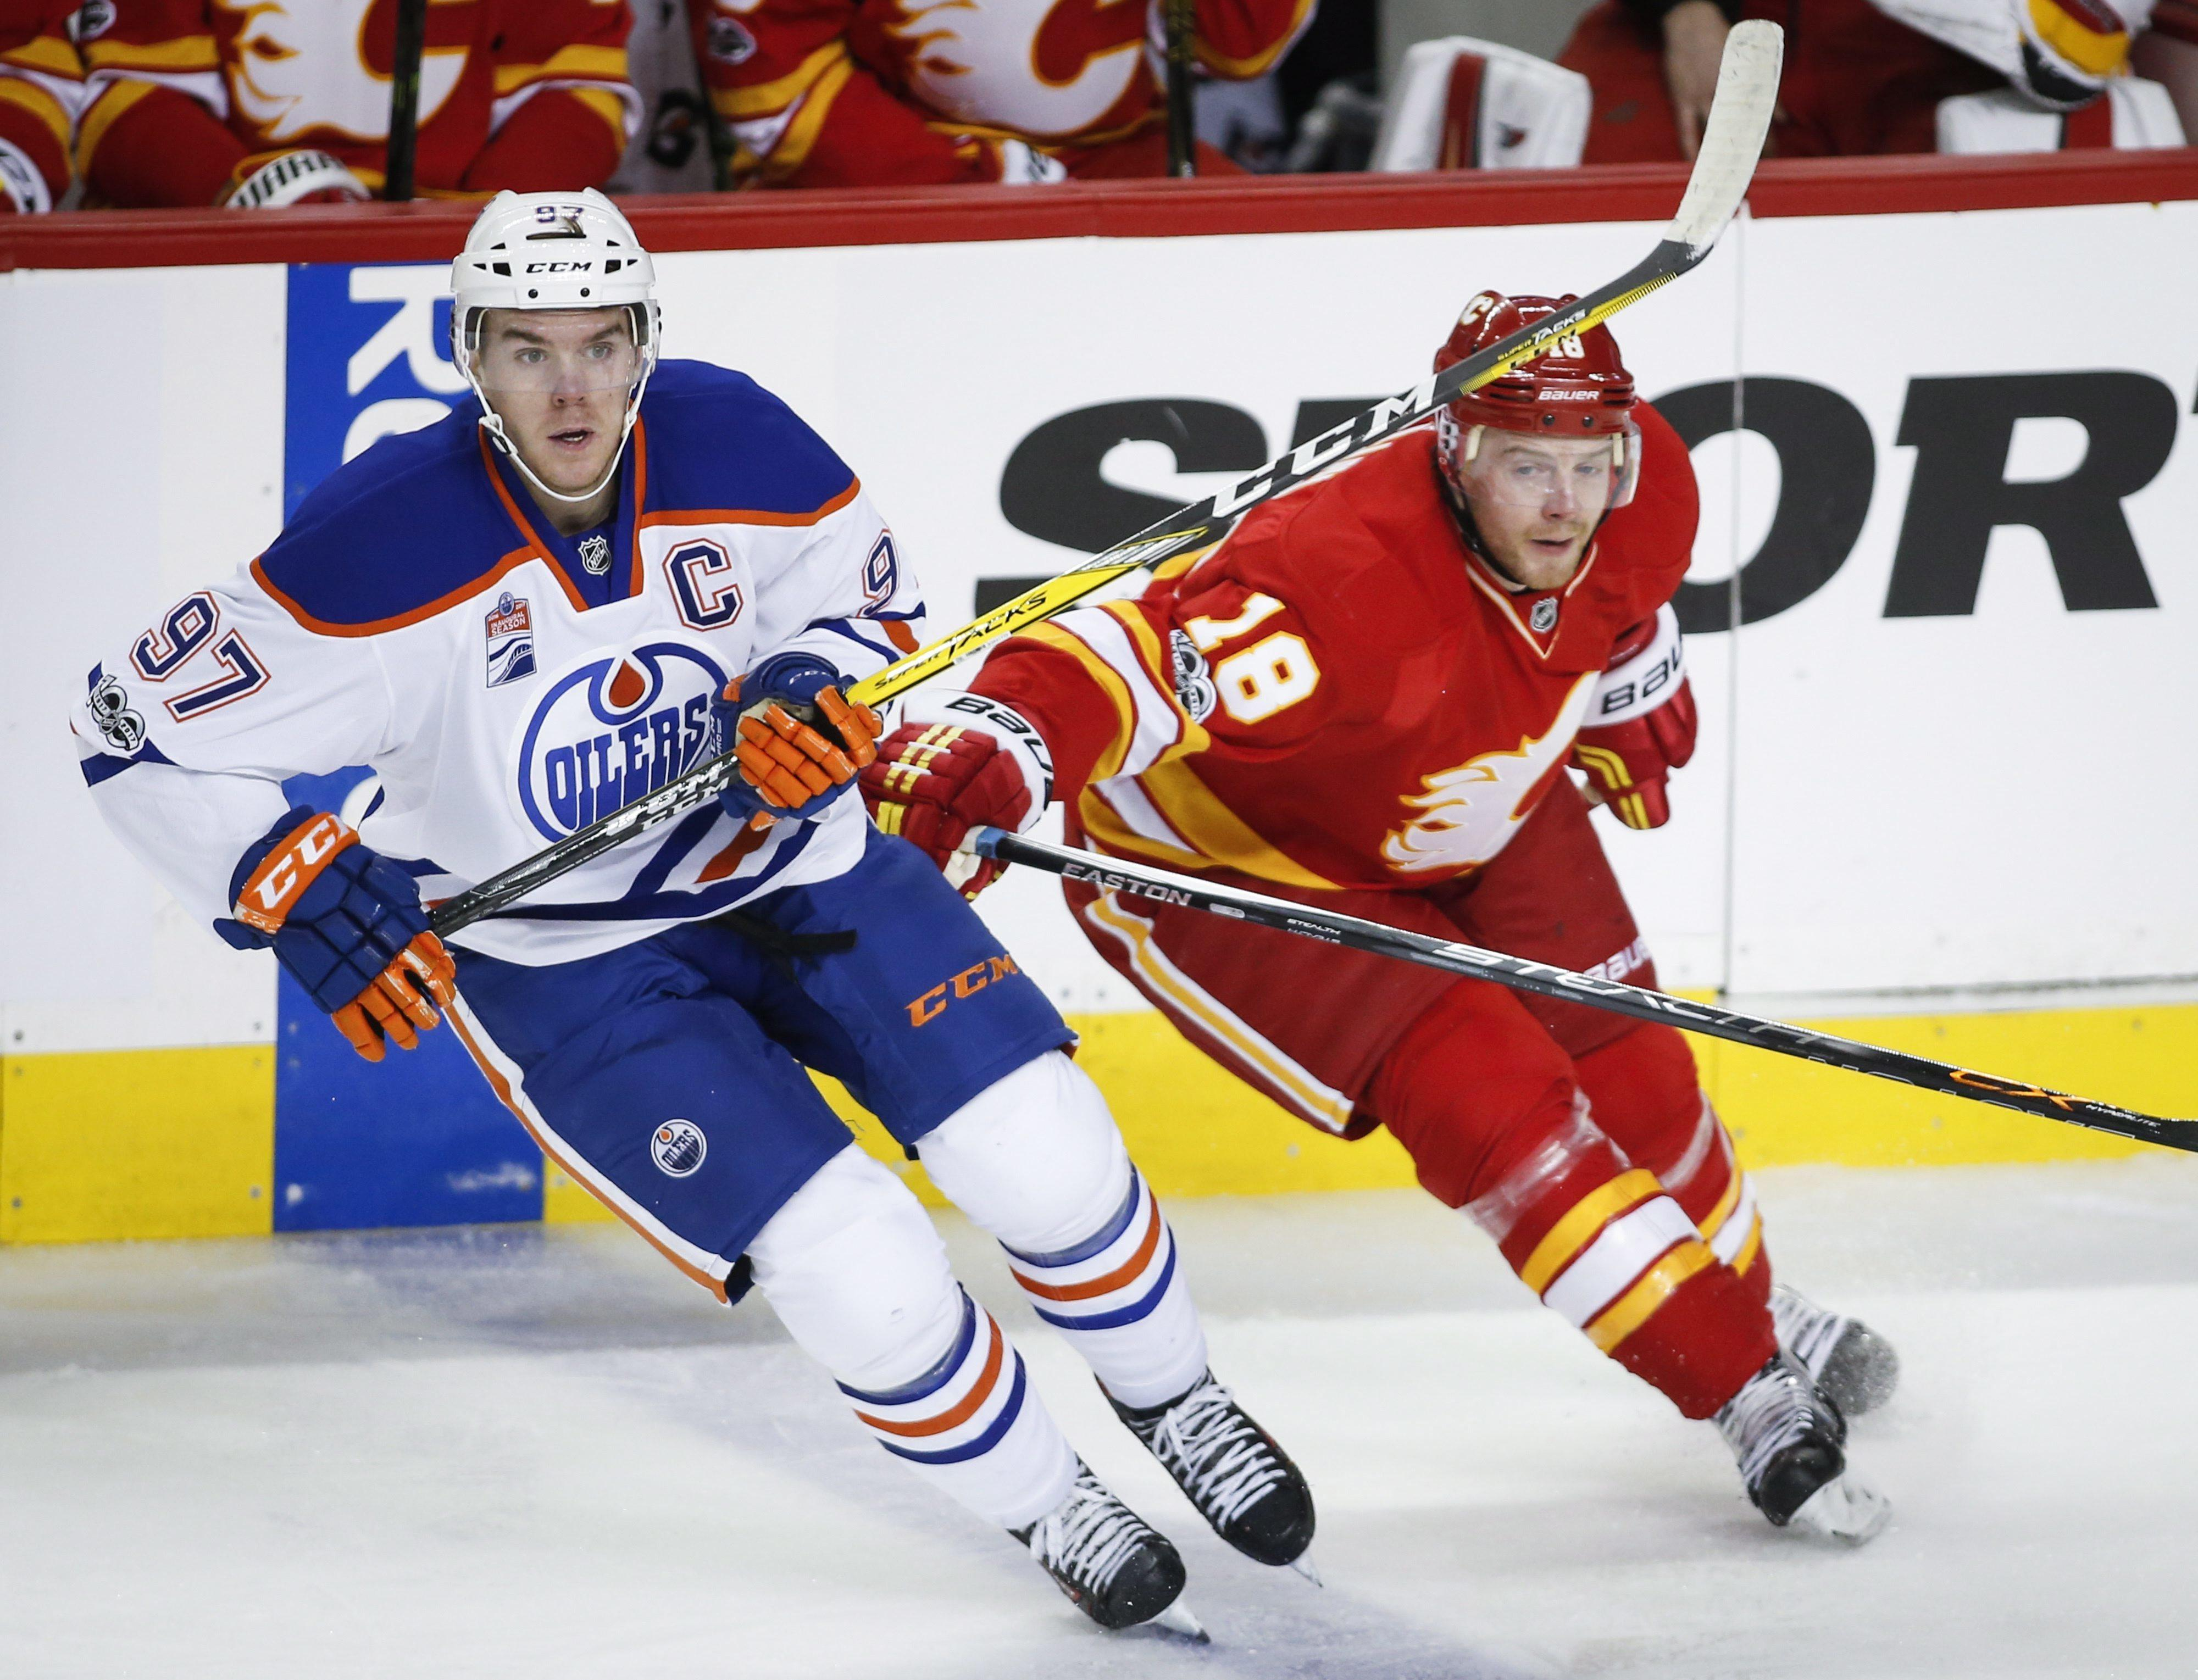 Oilers_flames_hockey_14770